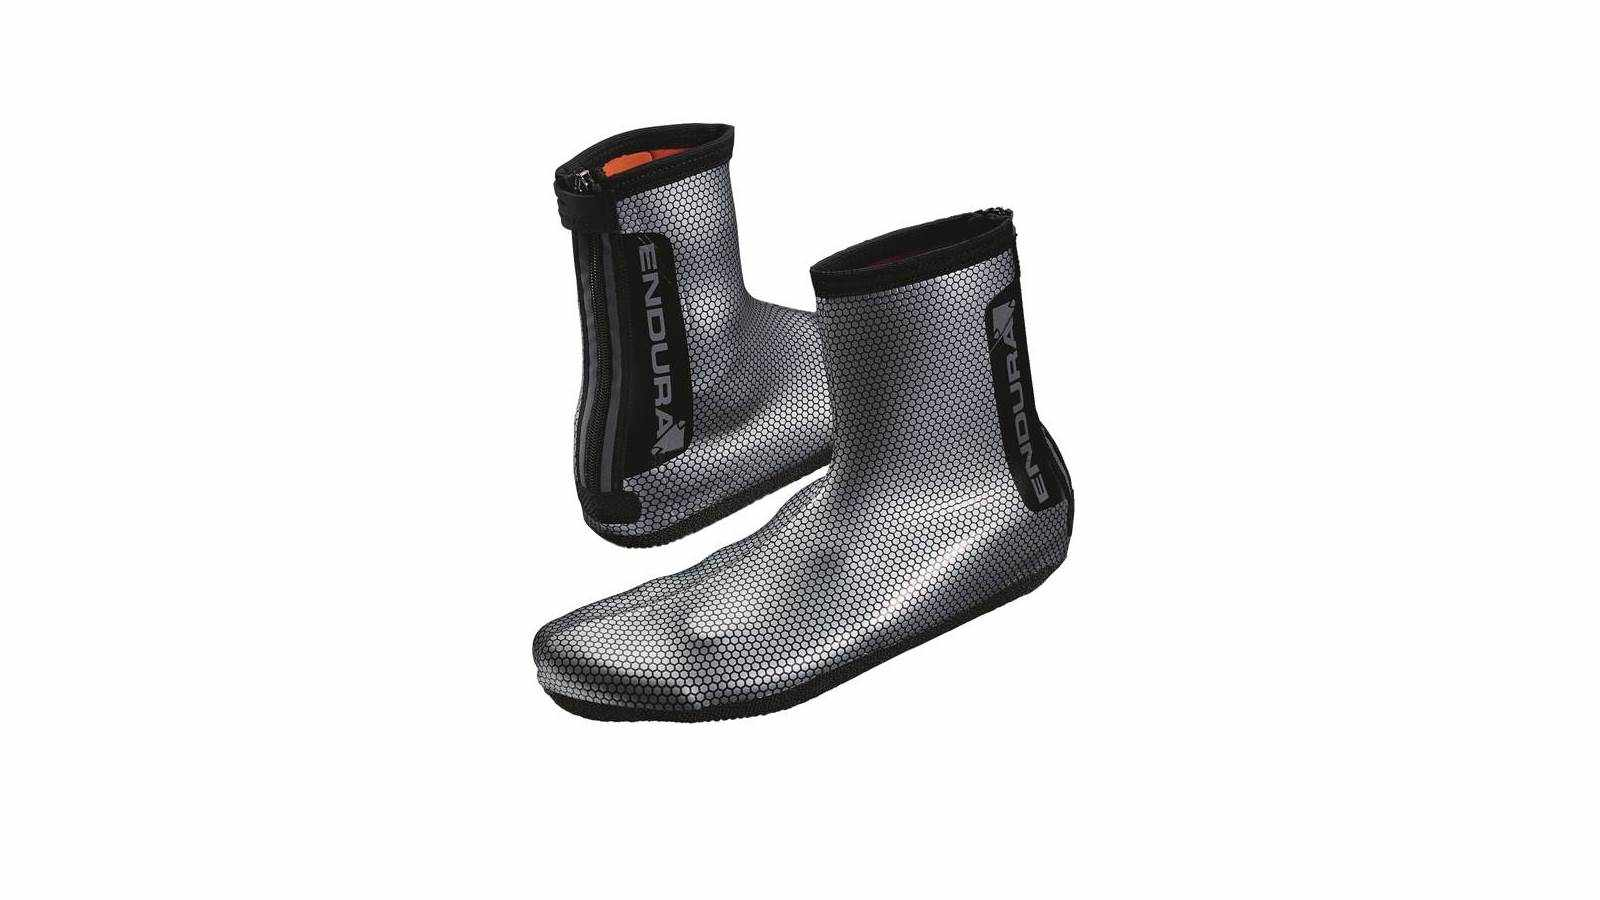 Endura's road overshoes